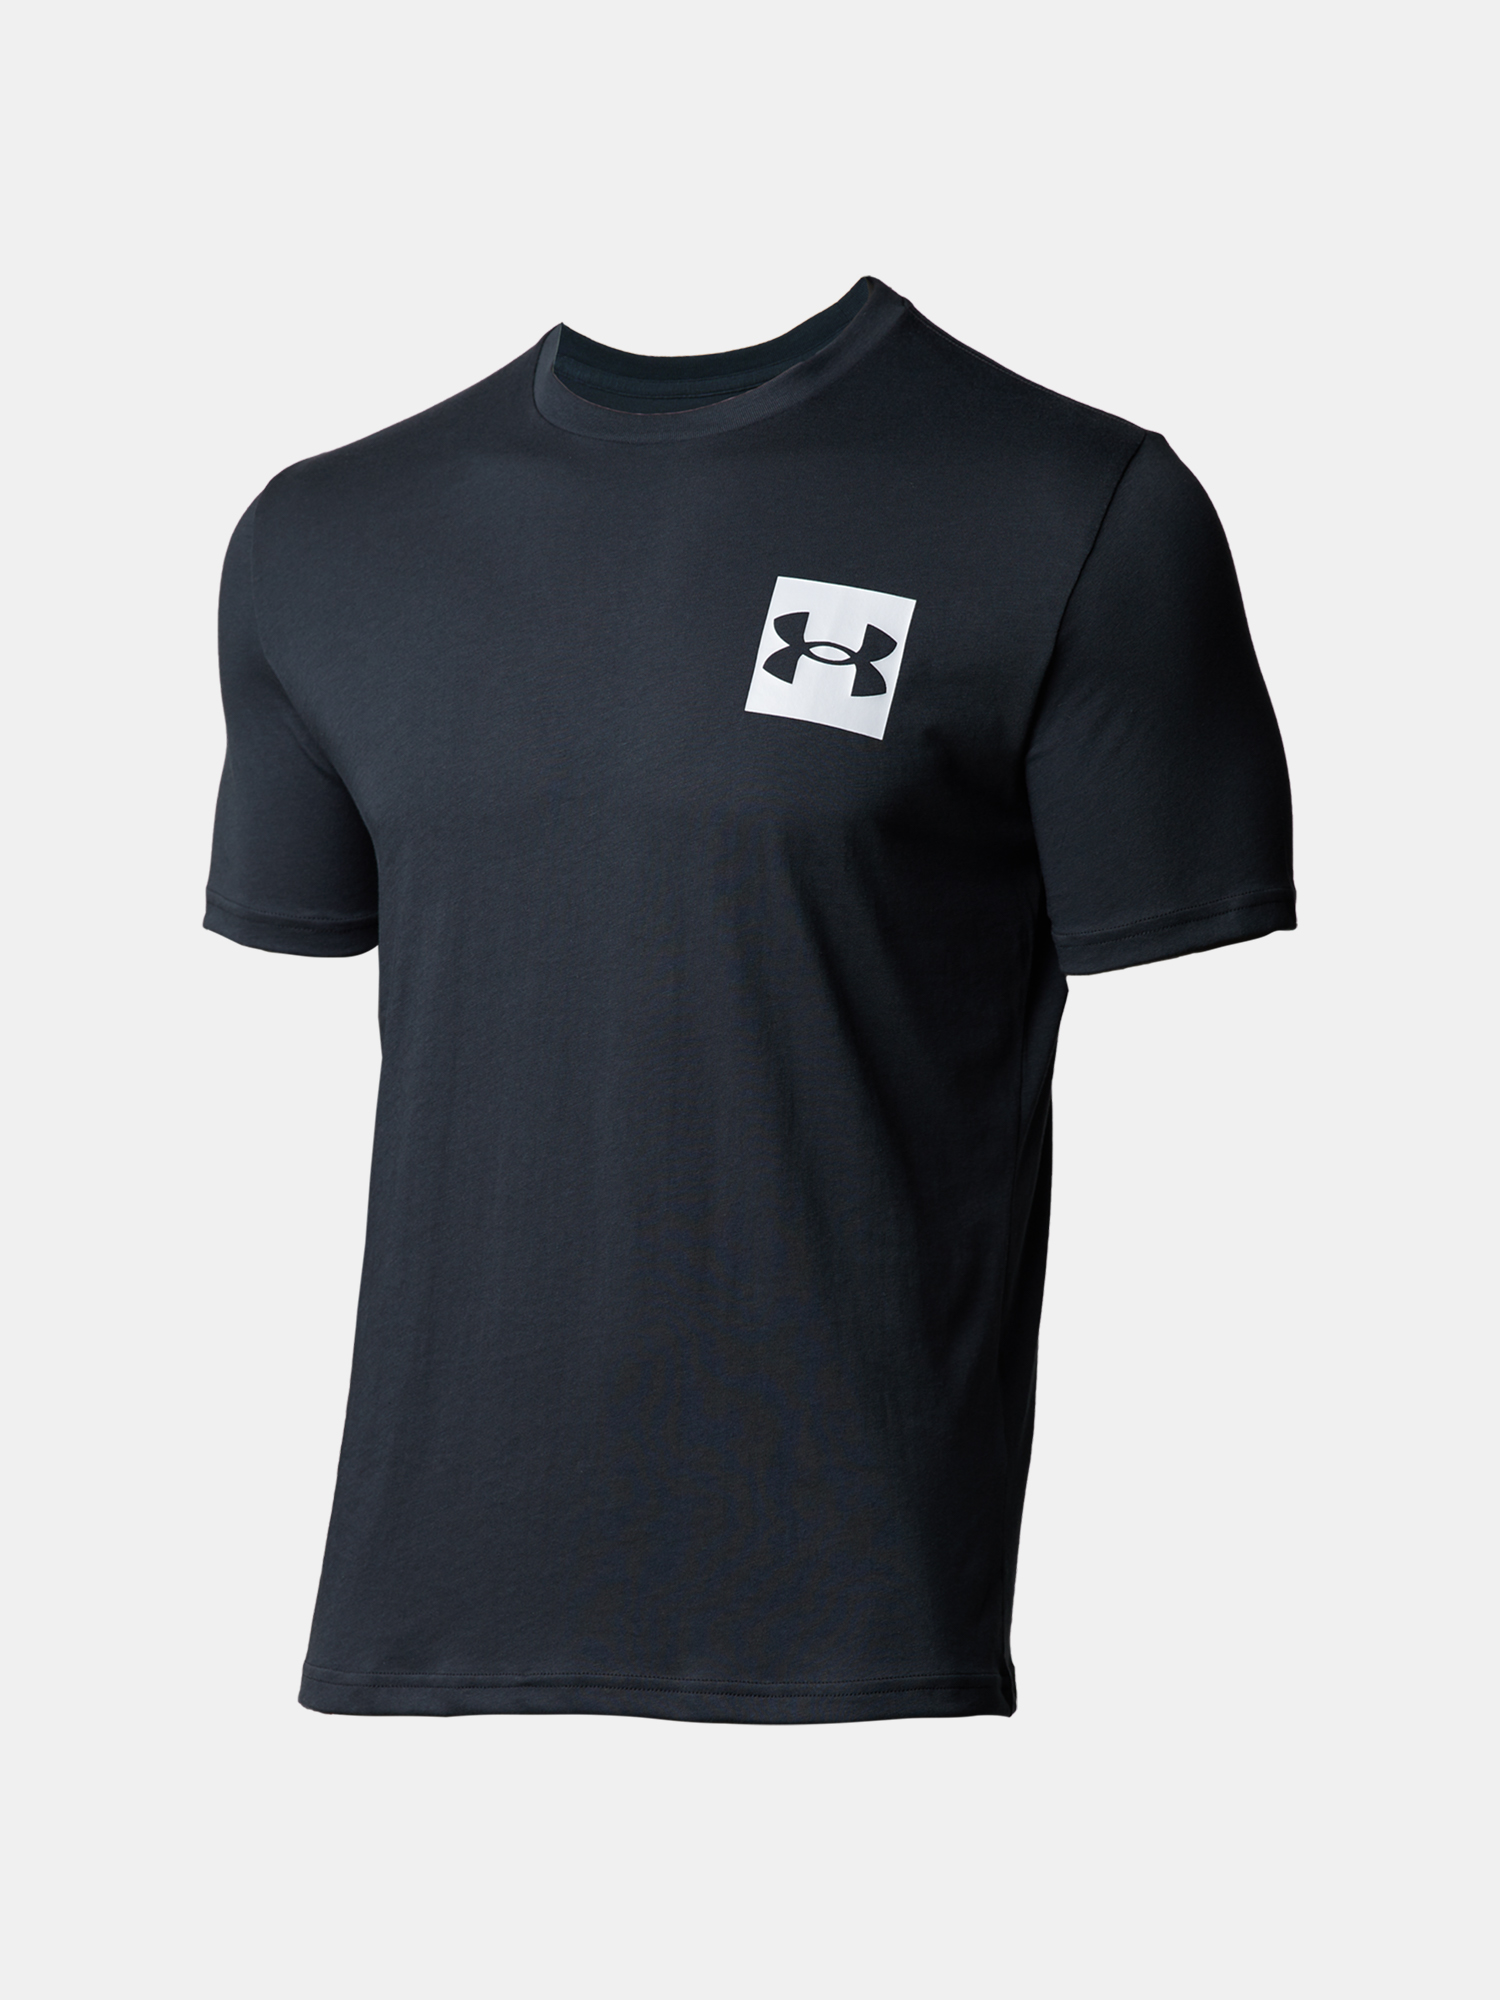 Tričko Under Armour UA BOX LOGO SS-BLK (3)